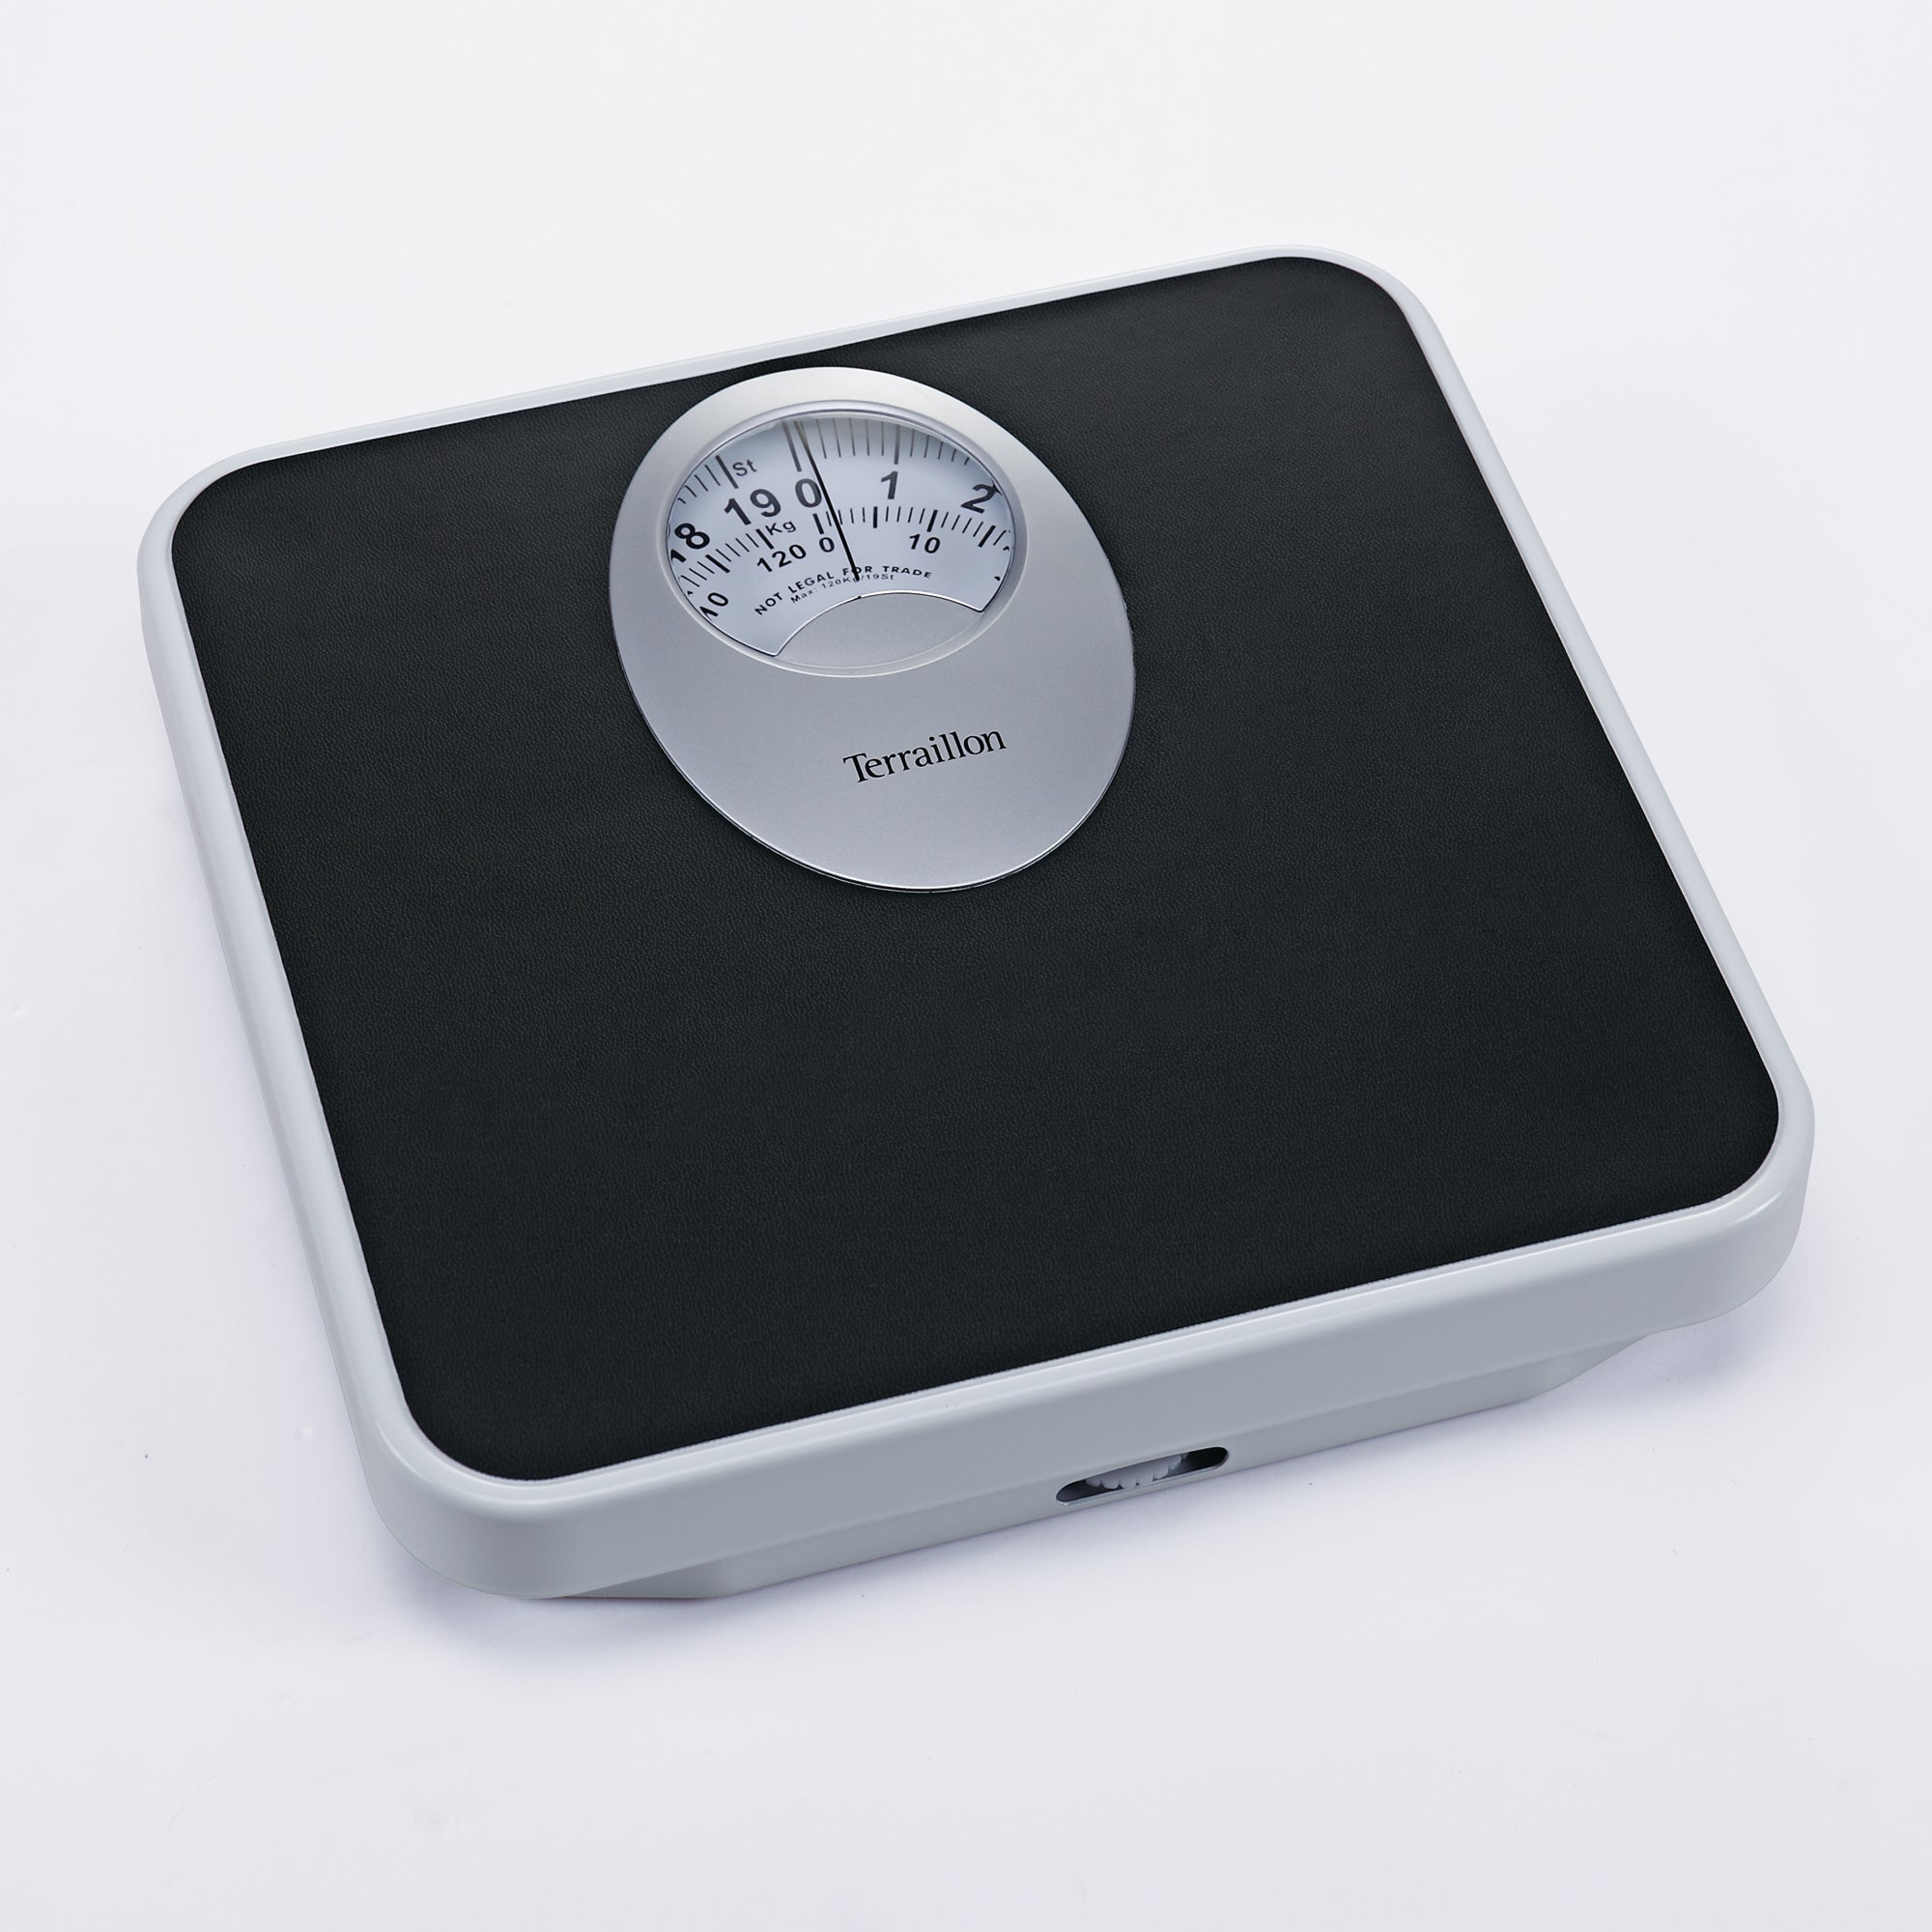 Image of Hanson H61 Mechanical Bathroom Scales Black